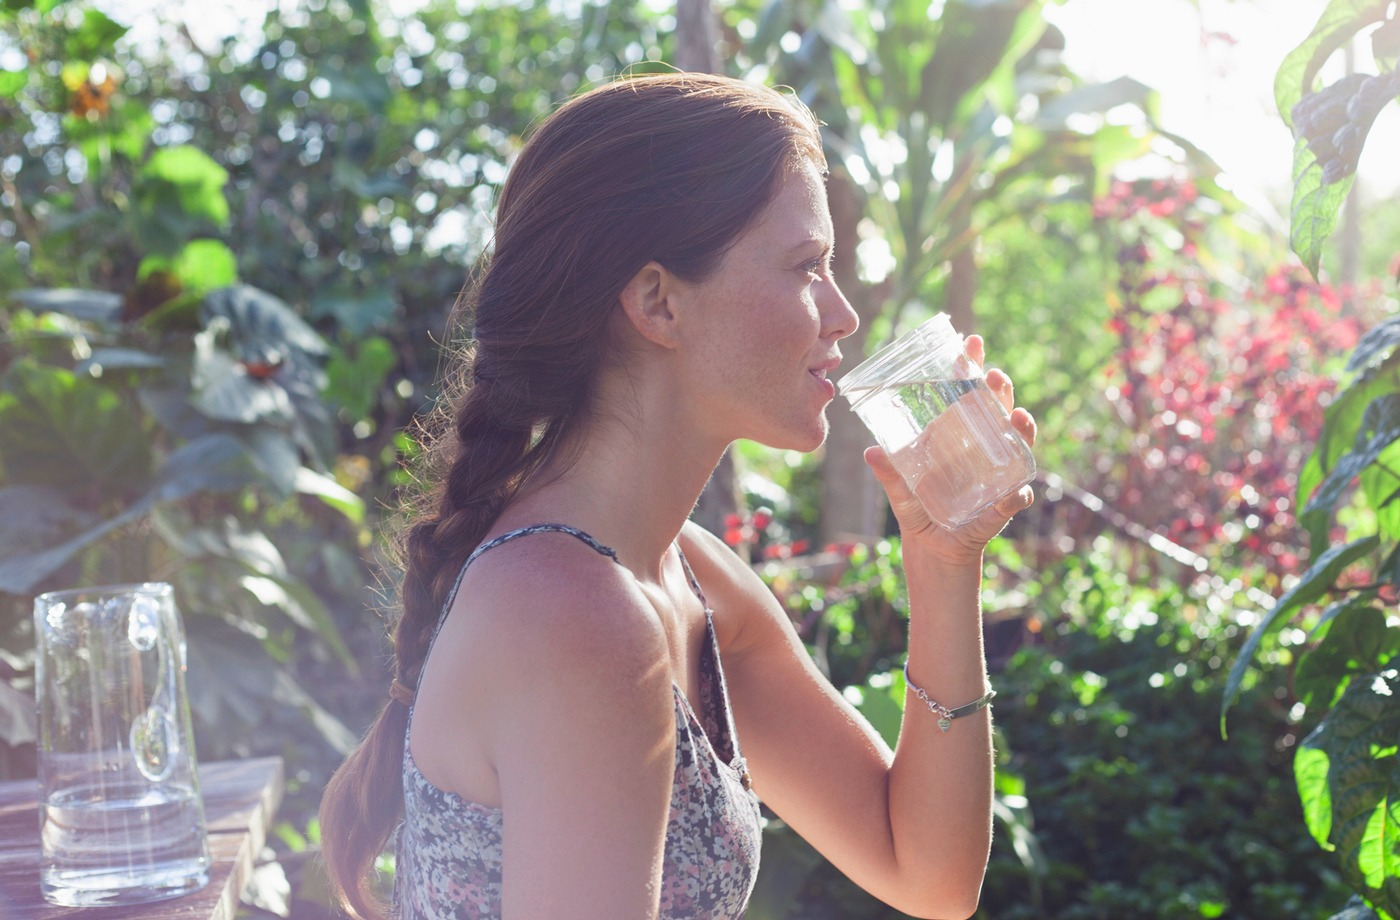 12 essentials to rehydrate from head to toe